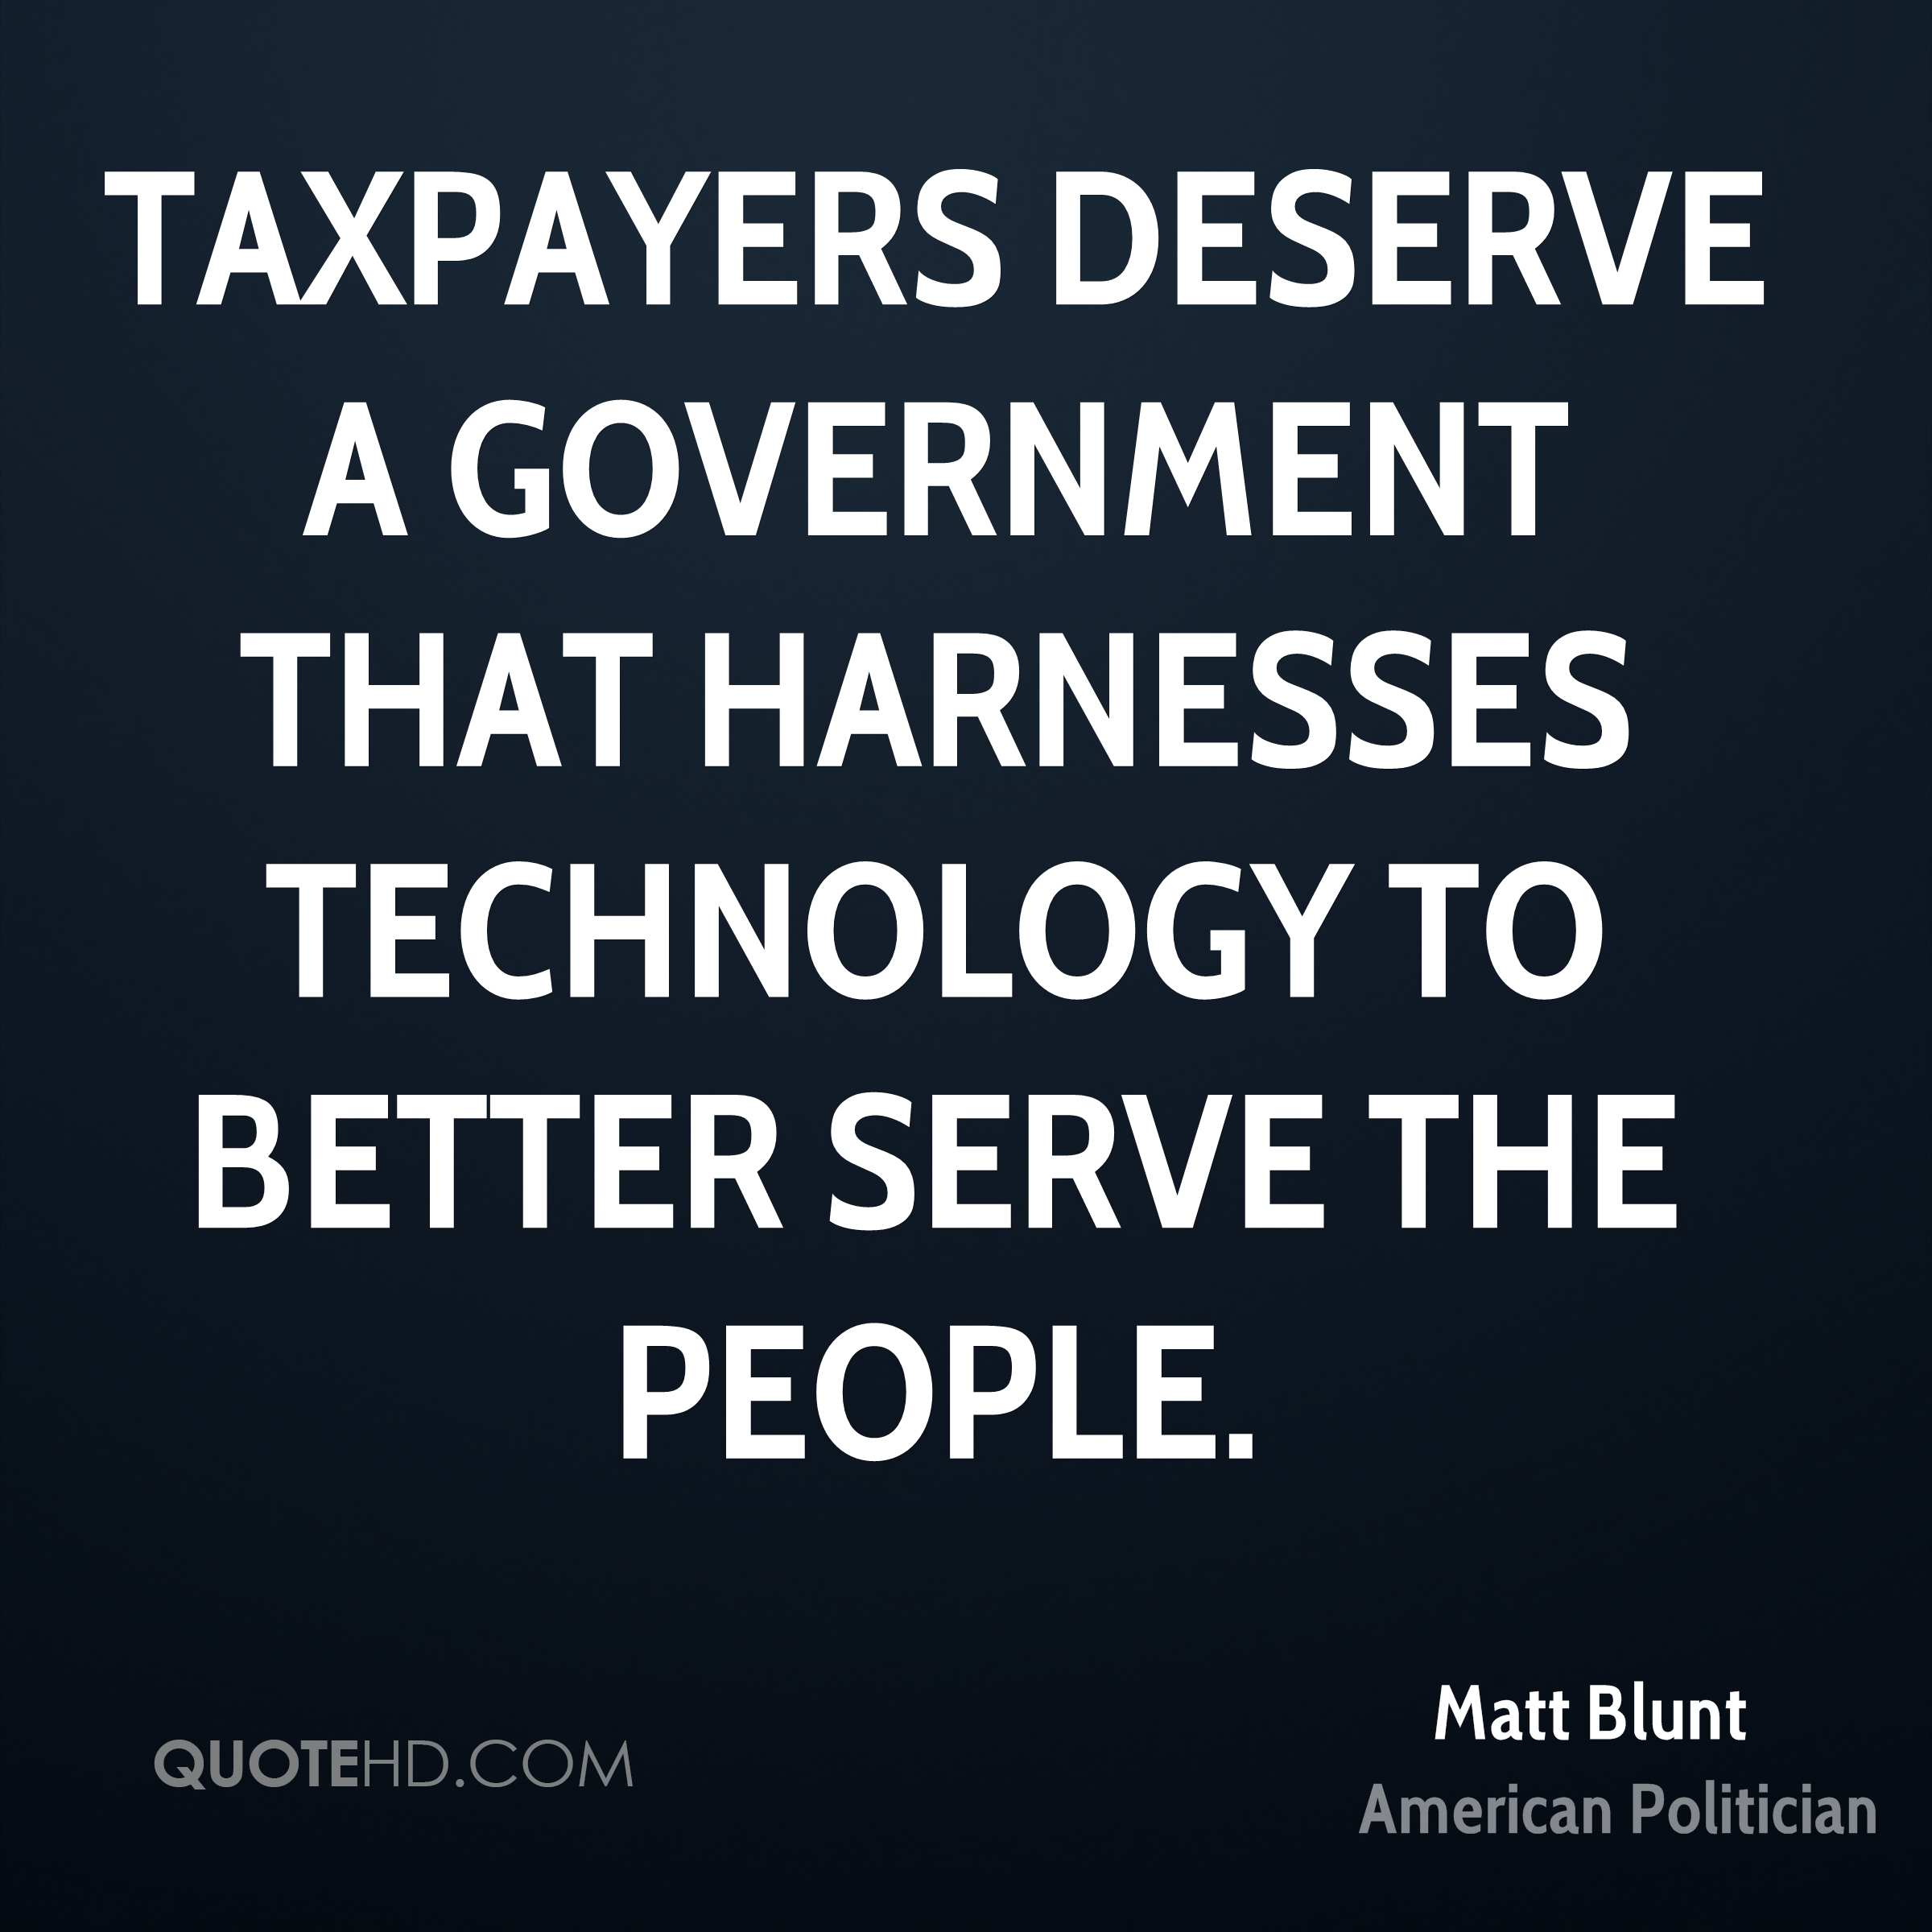 Taxpayers deserve a government that harnesses technology to better serve the people.